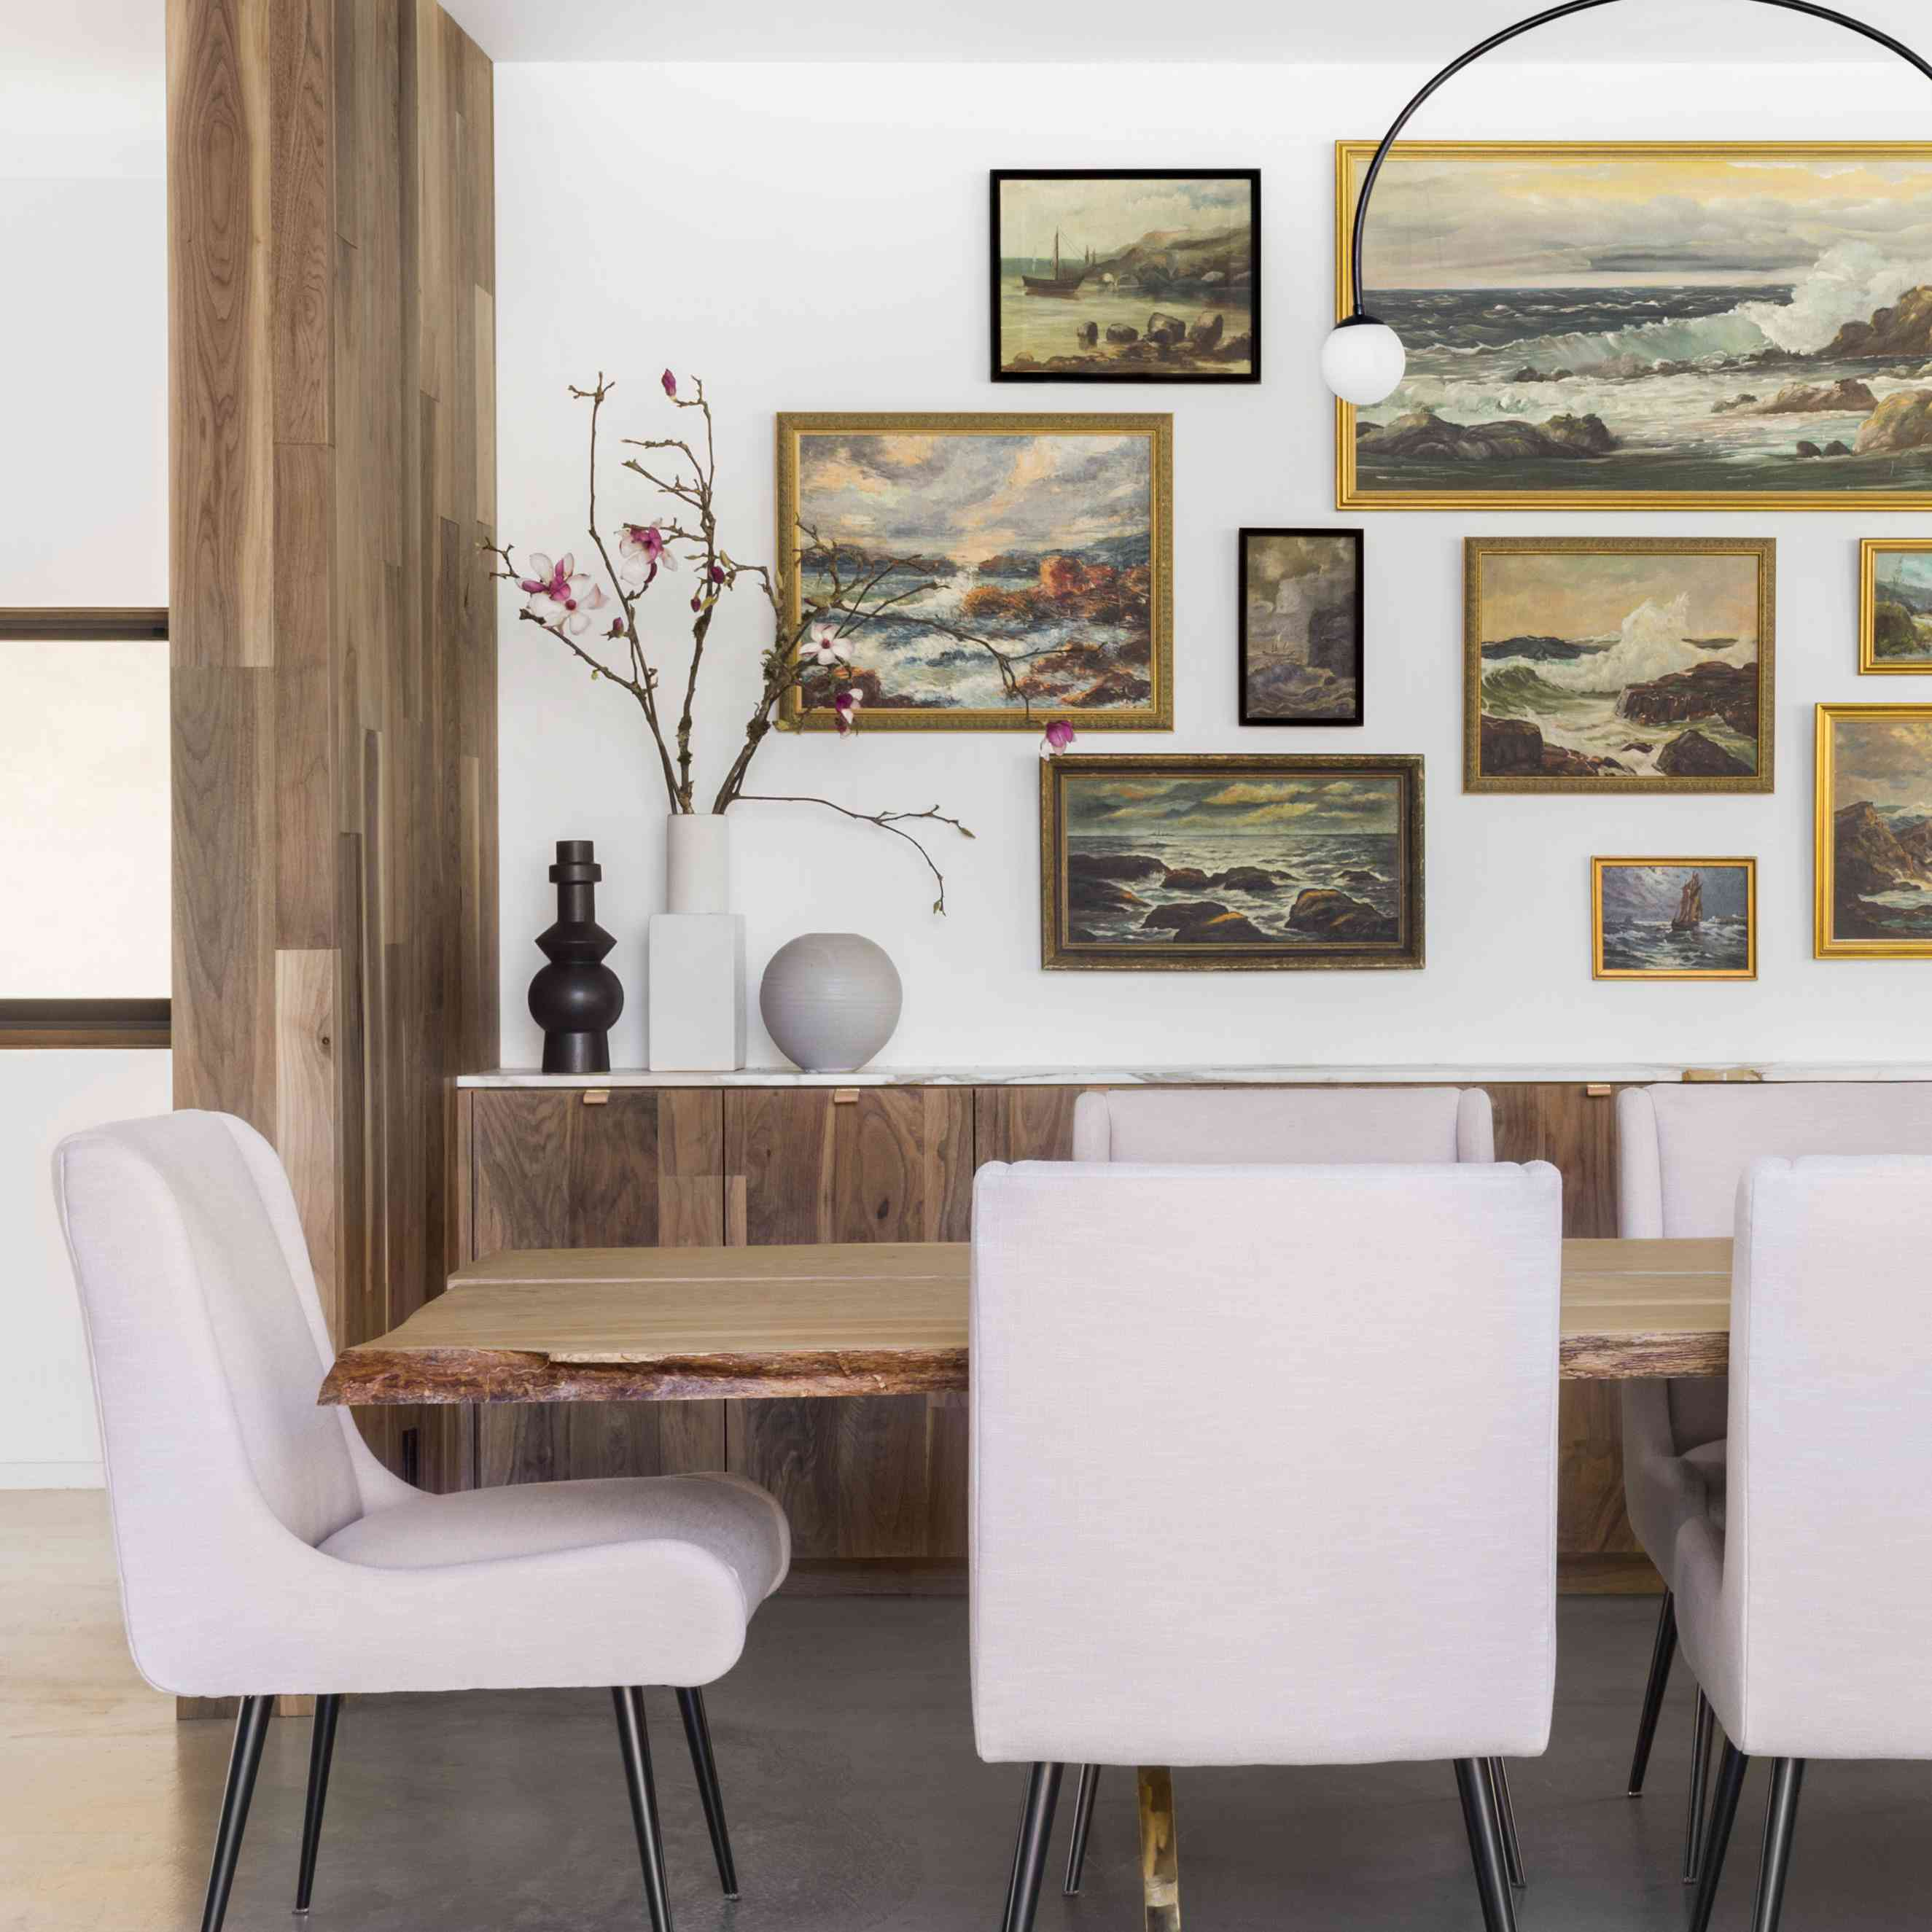 Modern dining room with ornate seascape gallery wall